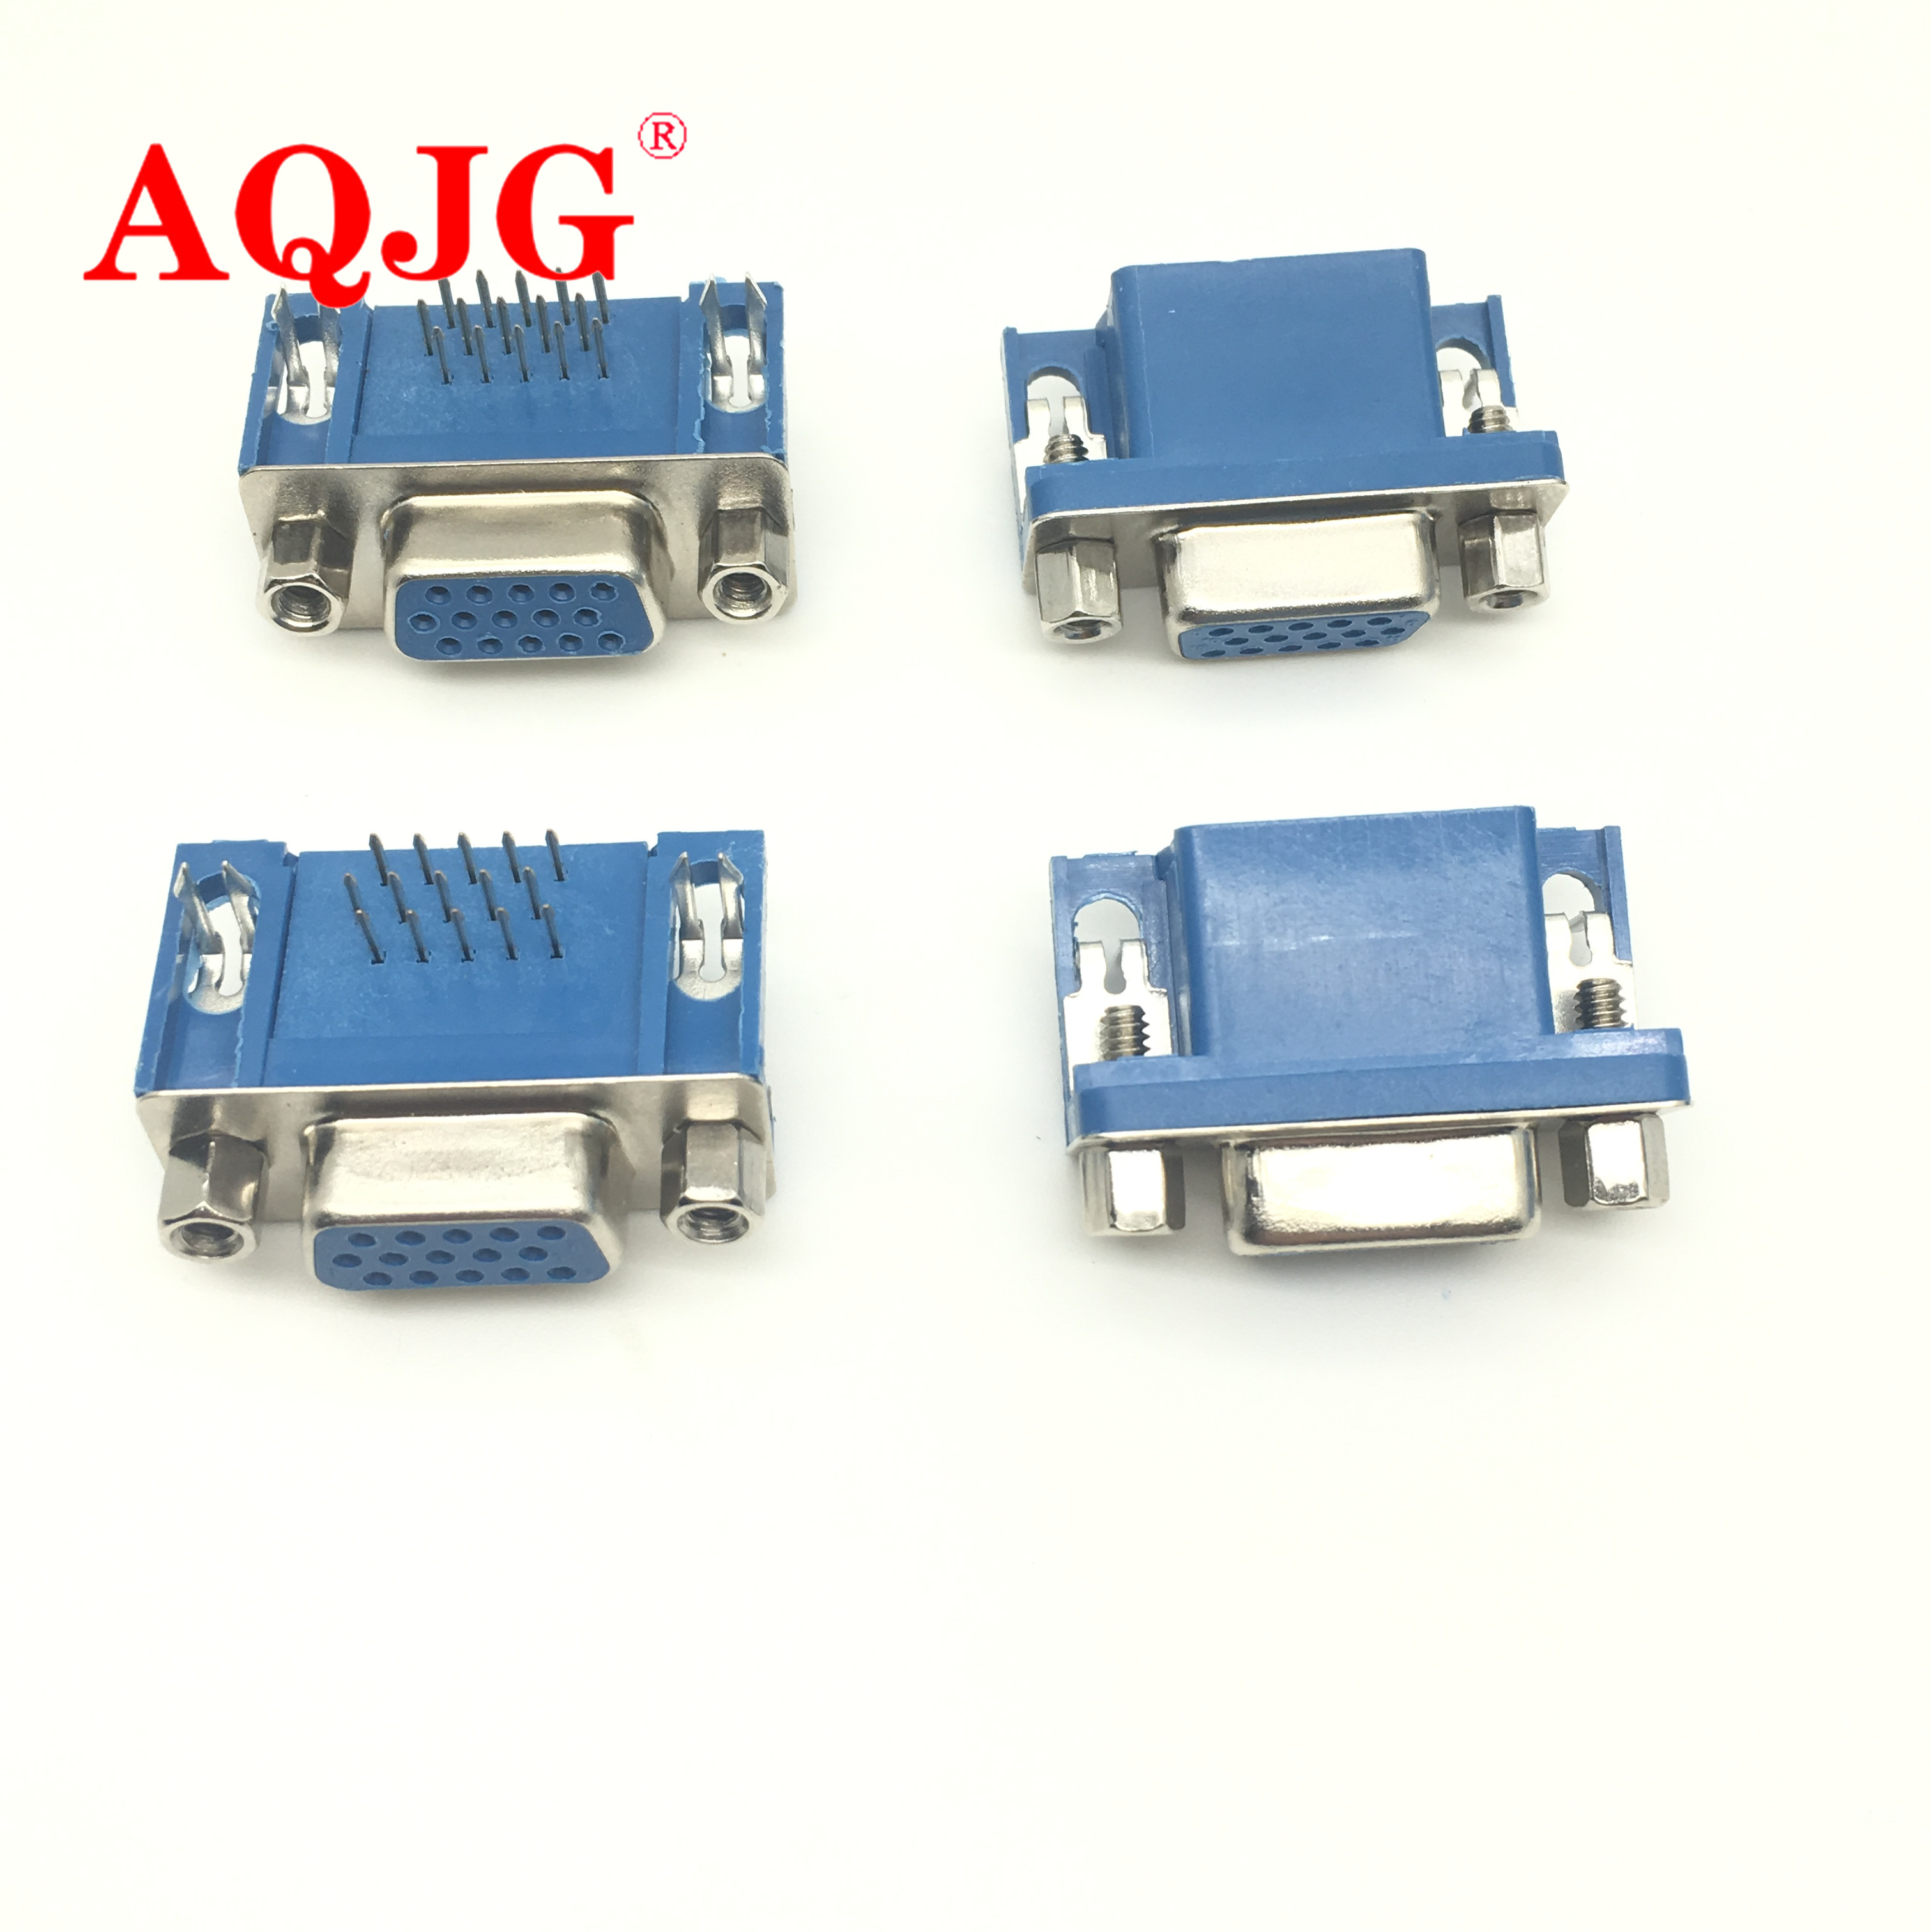 5PCS DB15 DR15 FEMALE PCB Mount CONNECTOR RIGHT ANGLE D-Sub 3Rows Blue Parallel Port CONNECTORS 15pin 15 Pin VGA Socket Adapter